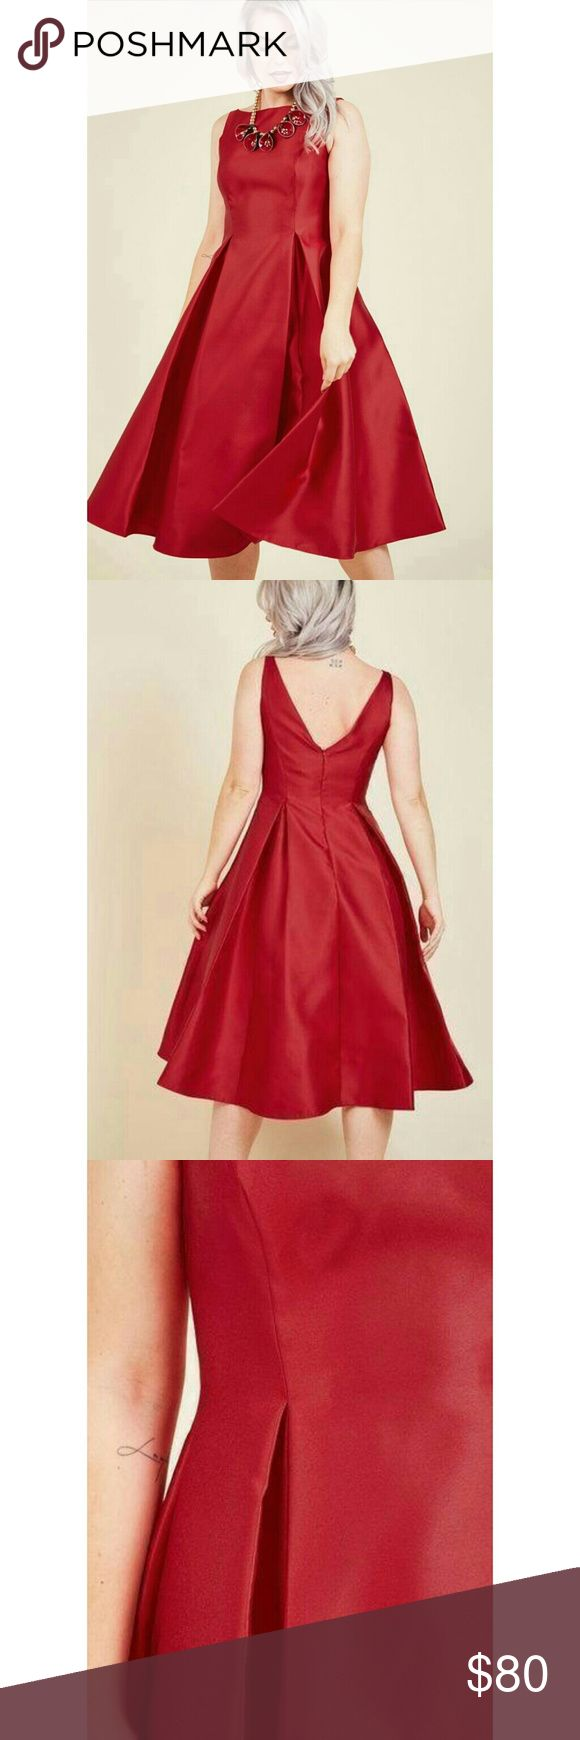 ModCloth: Careful What You Lavish For Midi Dress Days spent longing for a truly luxurious dress end with the arrival of this pleated fit and flare by Adrianna Papell! A sophisticated bateau neckline pairs flawlessly with the sleek princess seams, defined pleats, and rich red sheen of this pocketed midi, creating a look so dreamy, you may need a pinch! Adrianna Papell Dresses Midi